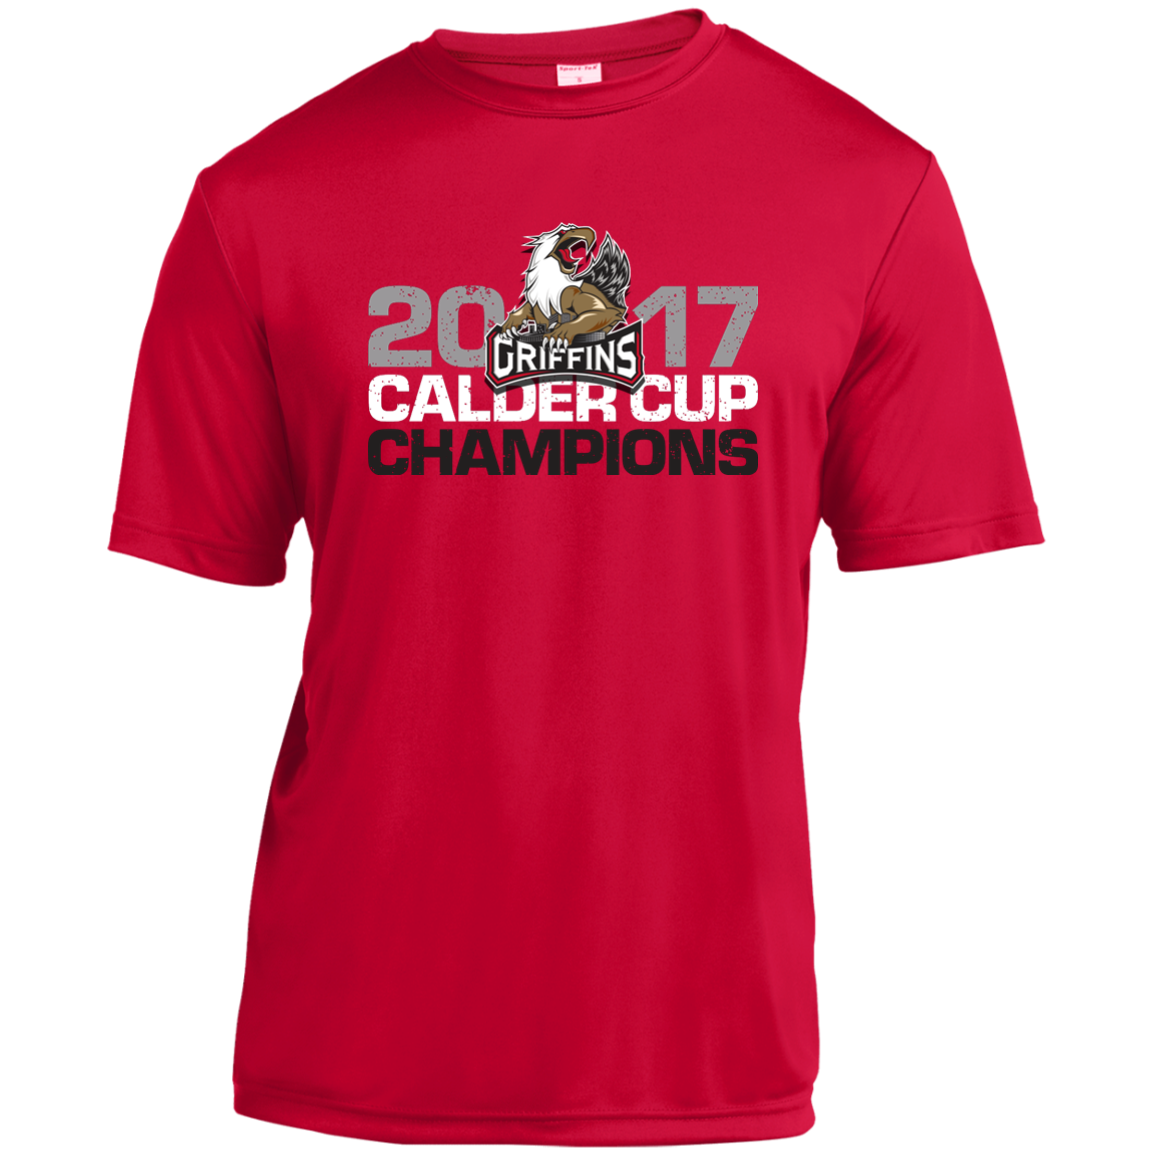 bc833b6a5 Grand Rapids Griffins 2017 Calder Cup Champions Distressed Short Sleev –  ahlstore.com